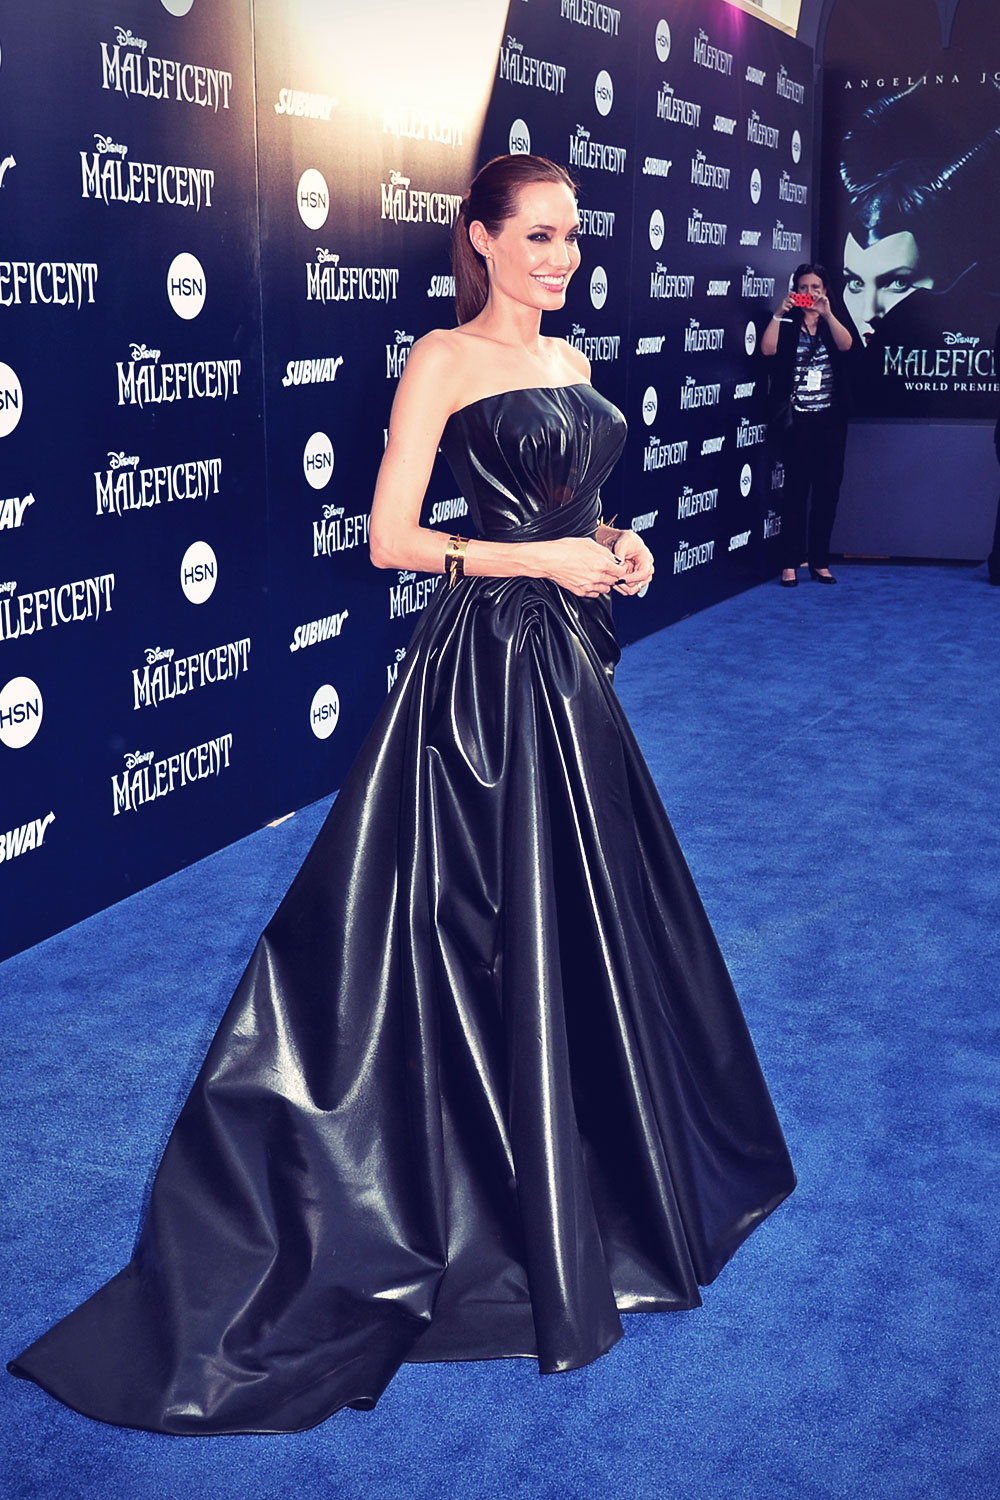 Angelina Jolie attends World Premiere of Disney Maleficent